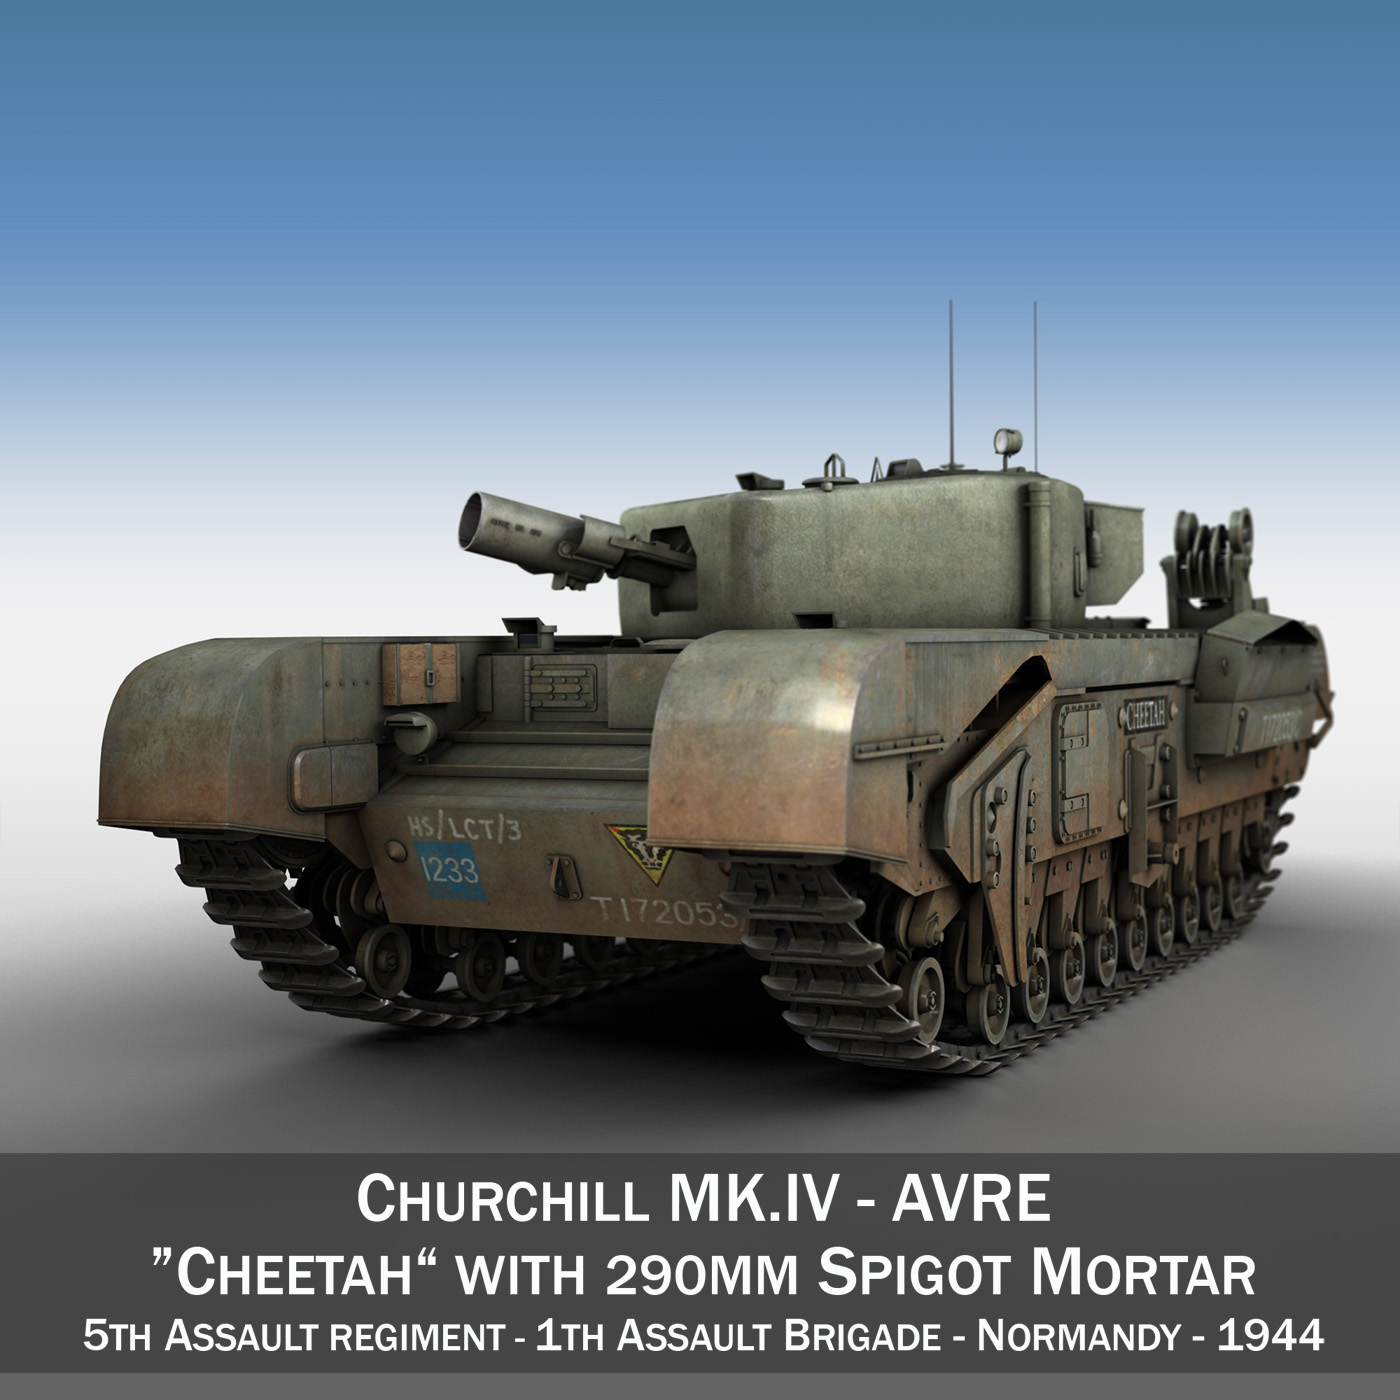 Churchill mk iv avre - guepard 3d model 3ds fbx c4d lwo obj 273012